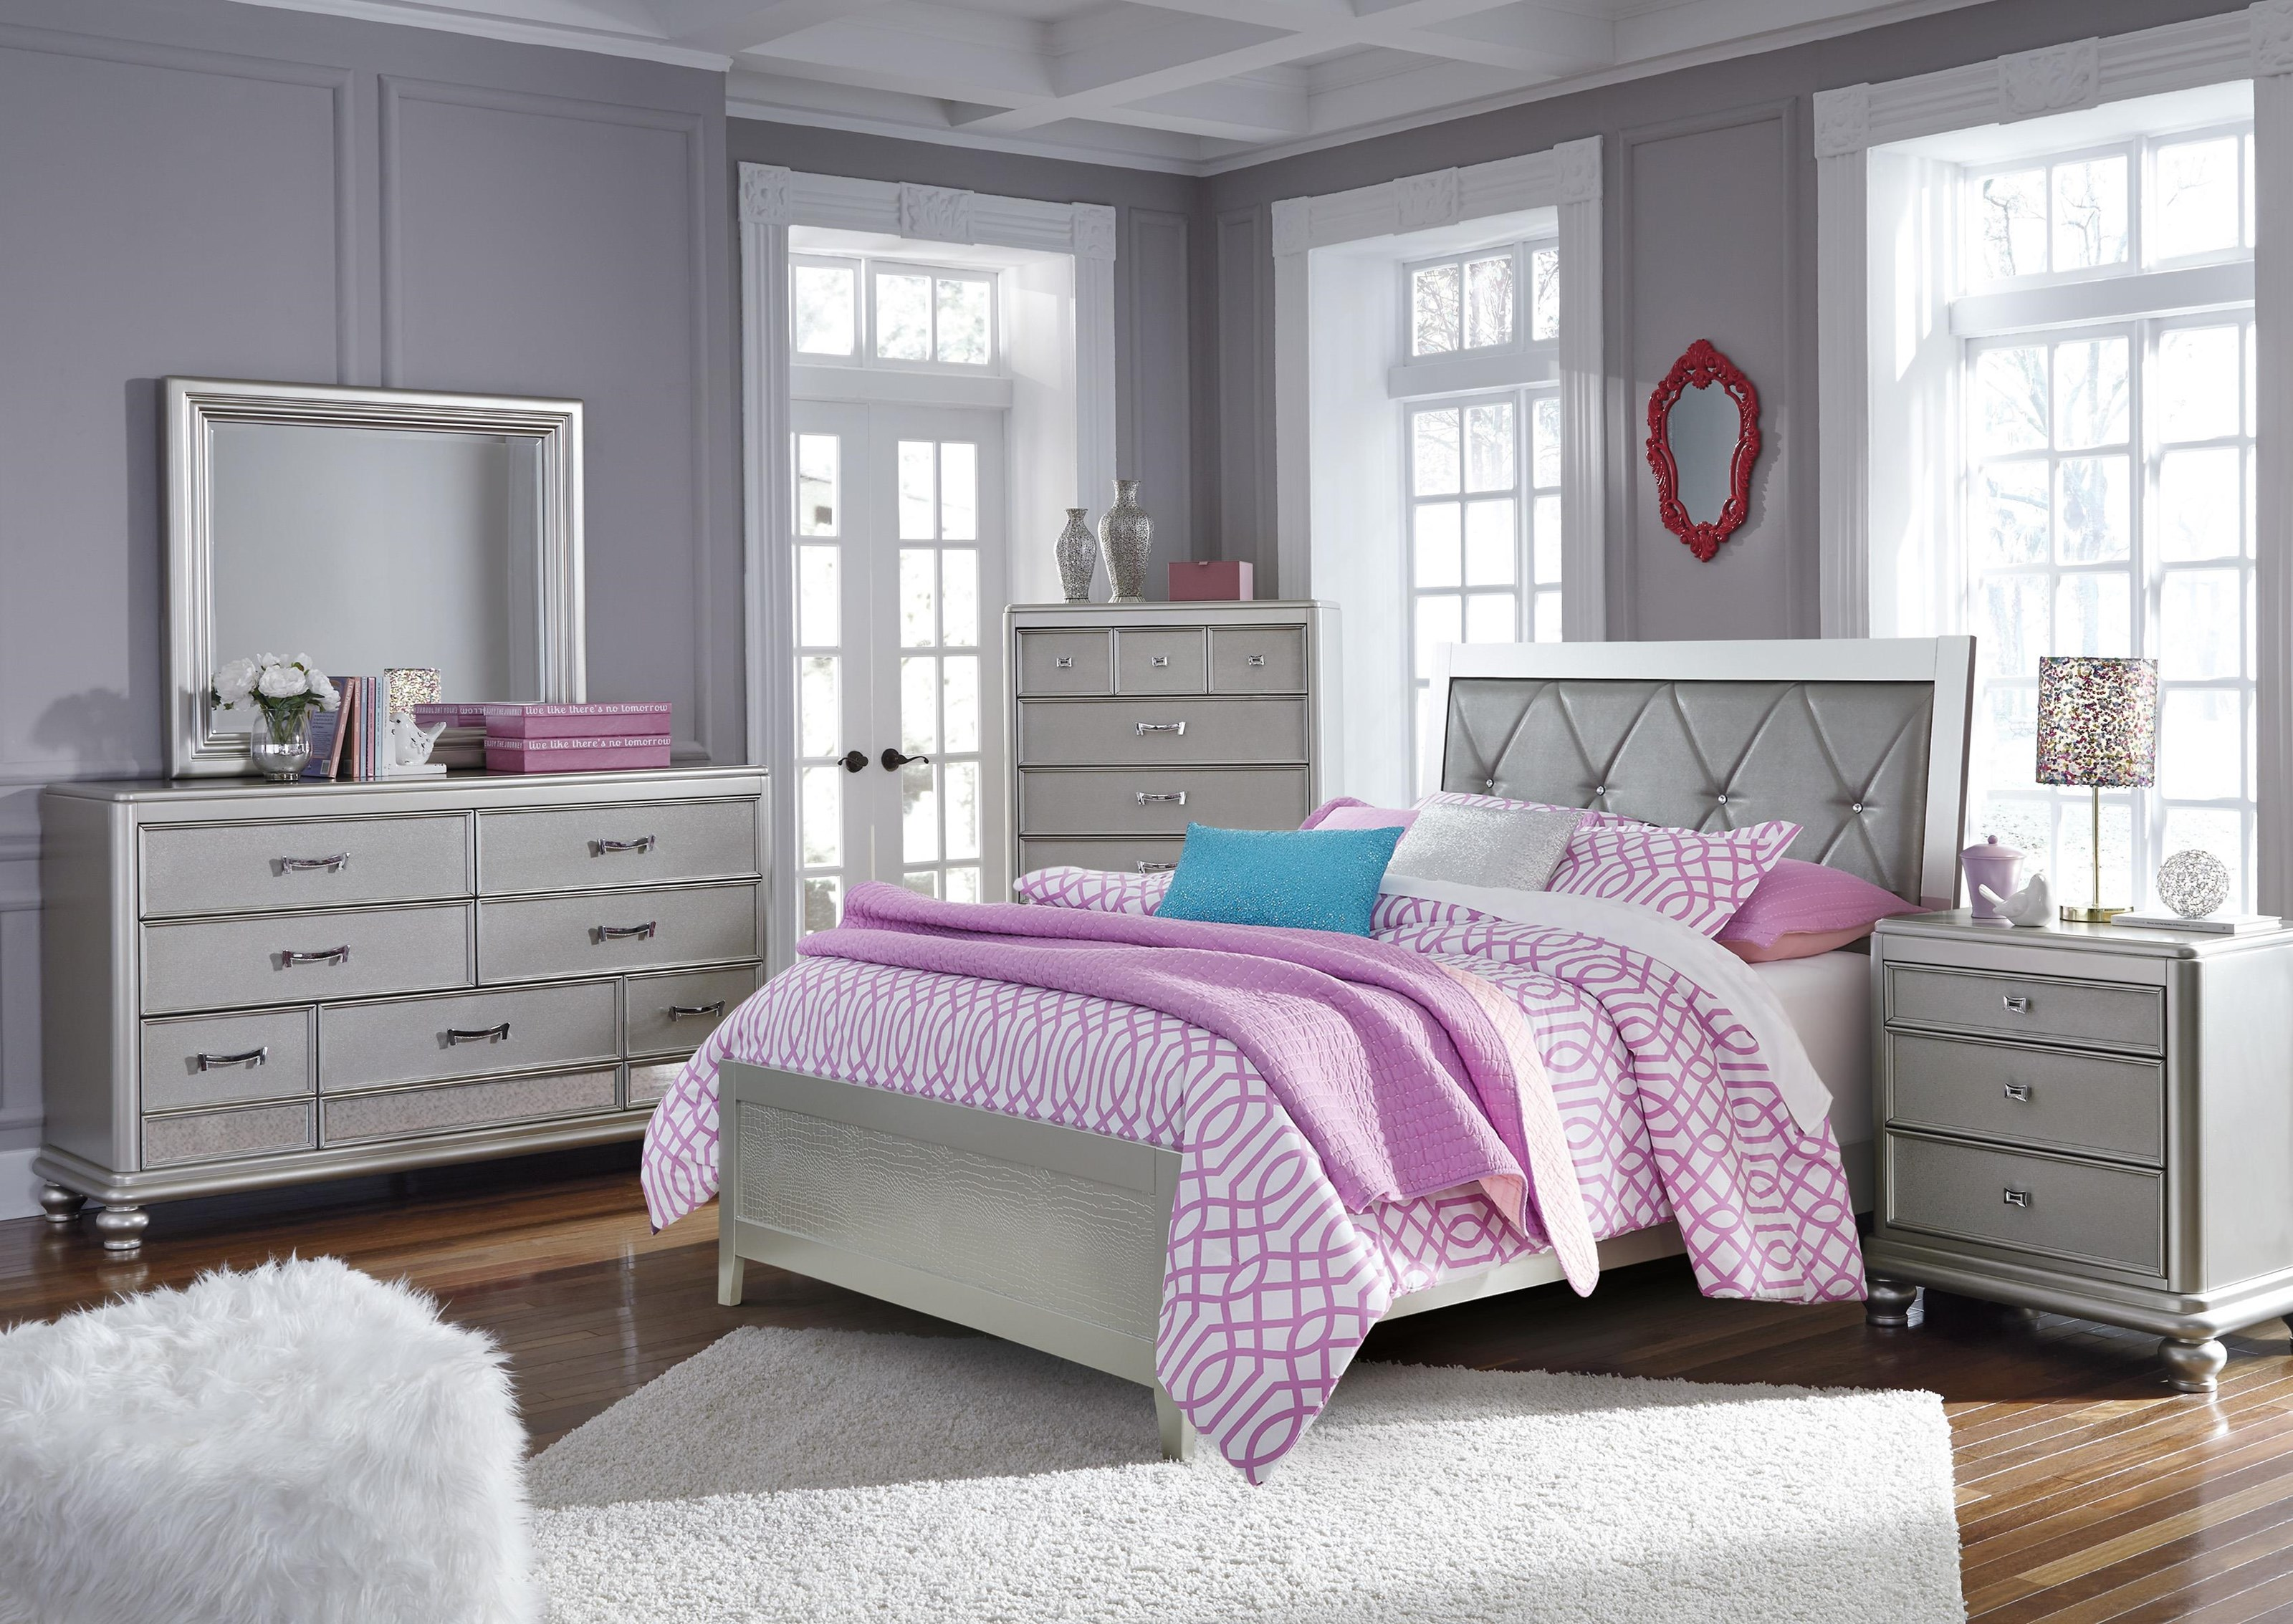 Signature Design By Ashley Olivet B560 55 86 92 46 Full Upholstered Panel Bed Nightstand And